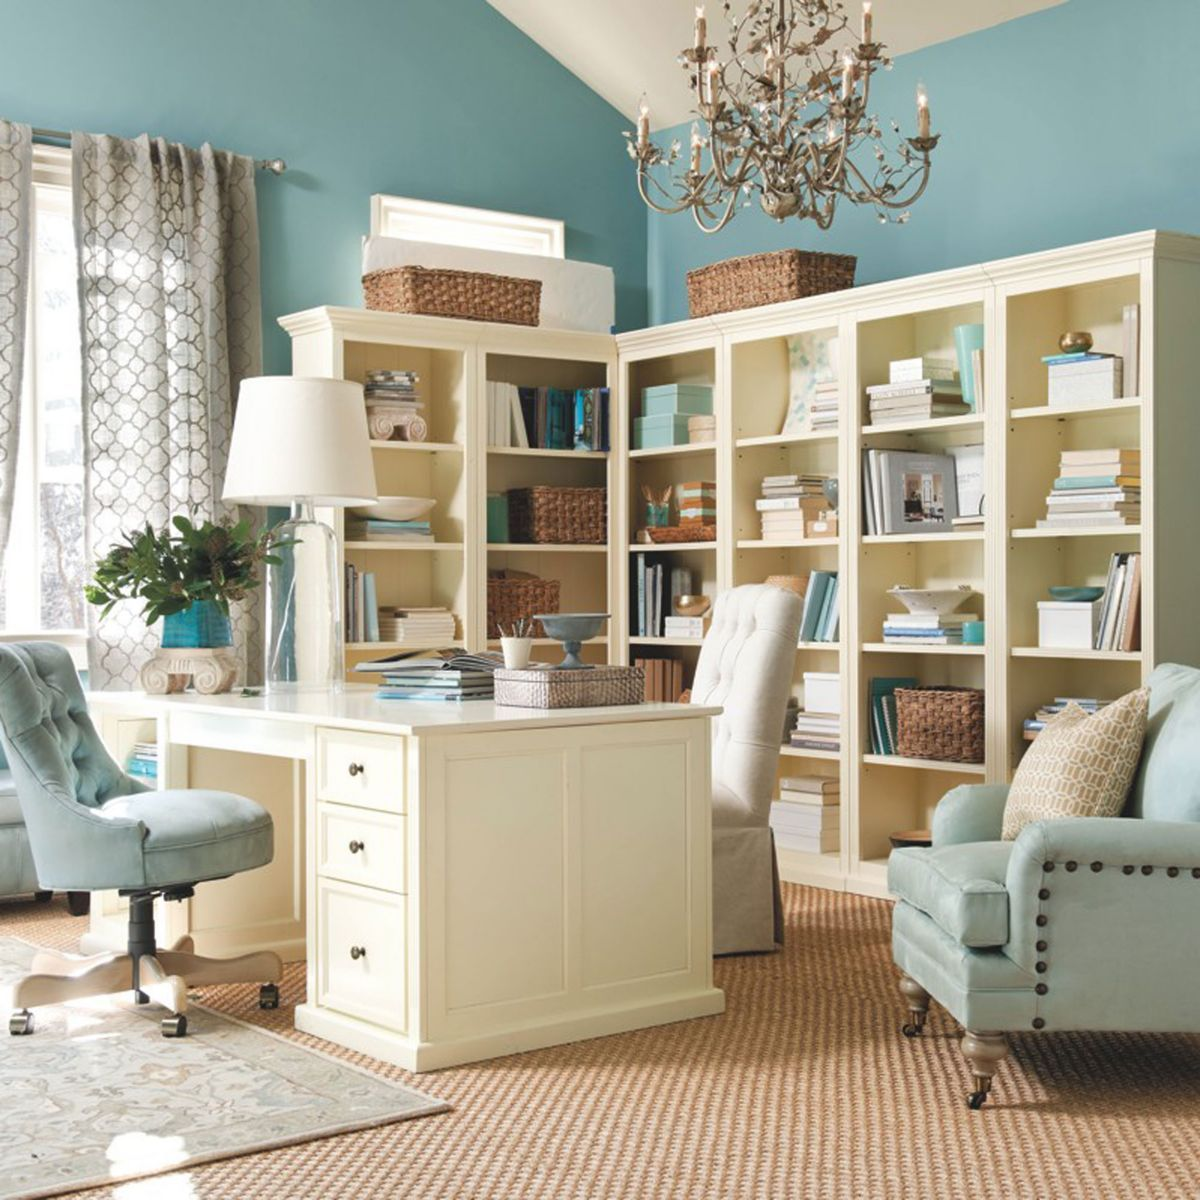 Decorating Ideas For Study Spaces: Here Is A Cabinet For An Office Like Study Room In Your